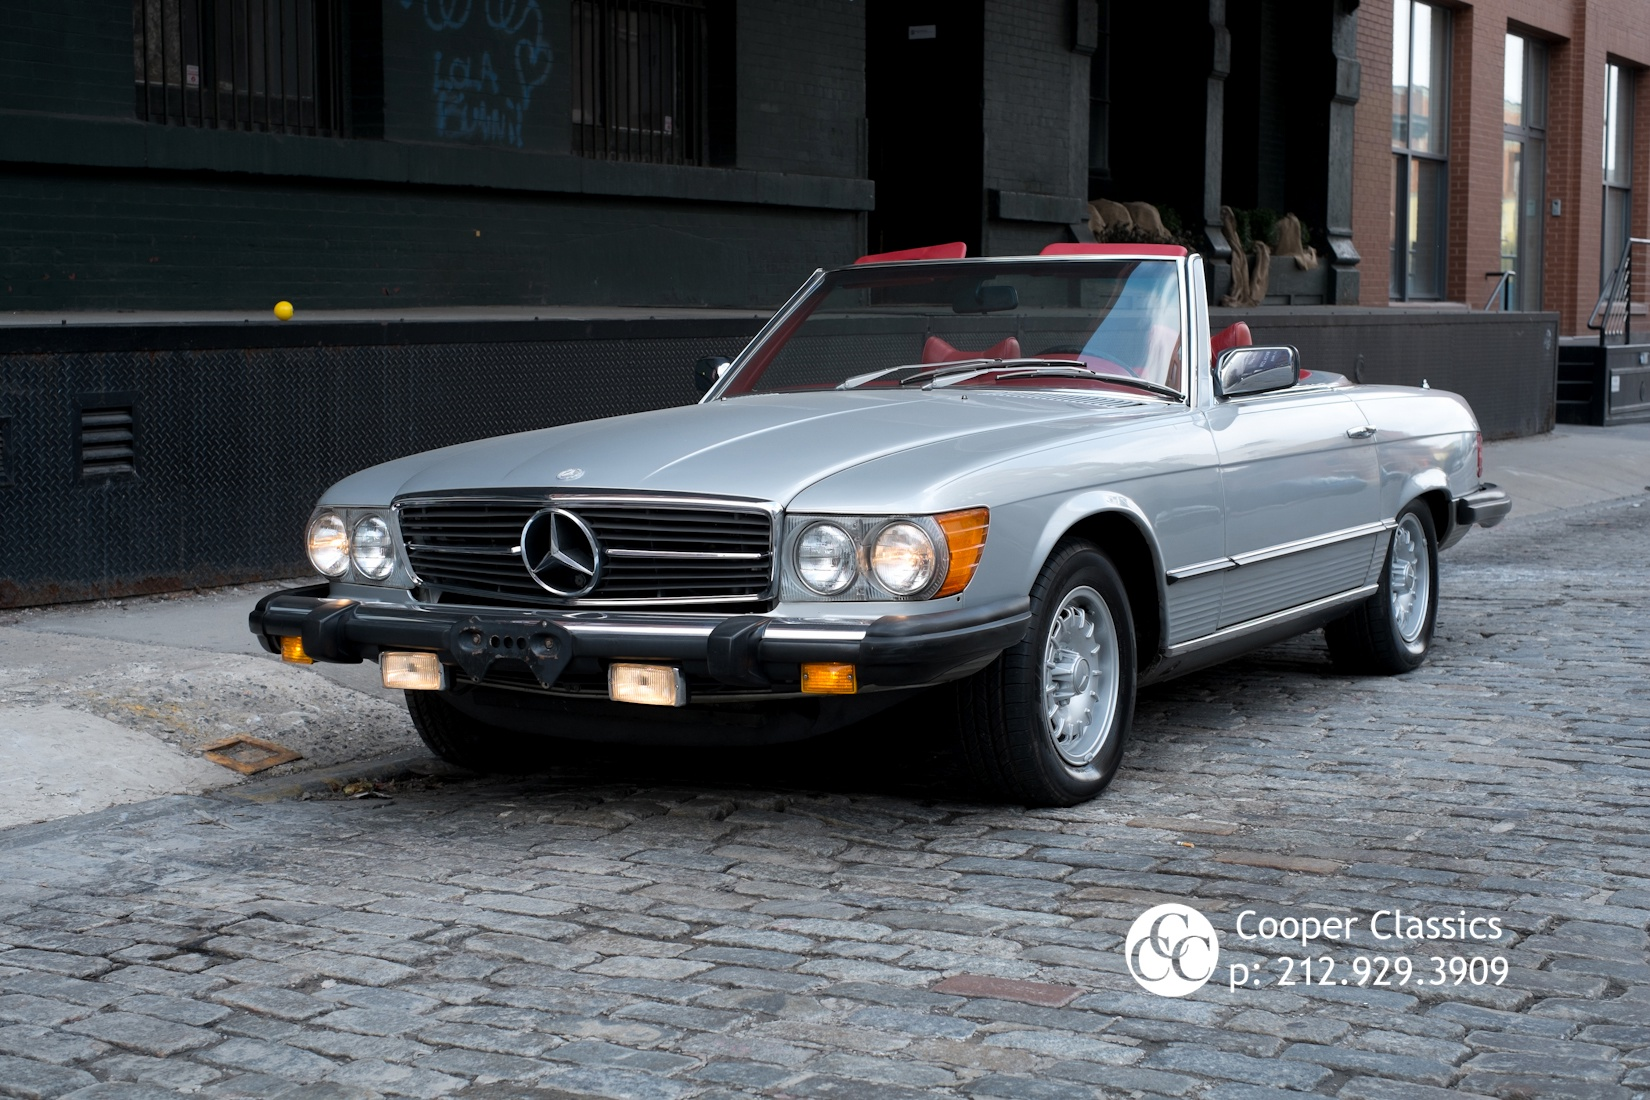 1979 mercedes benz 450sl stock 555 for sale near new for Mercedes benz nyc